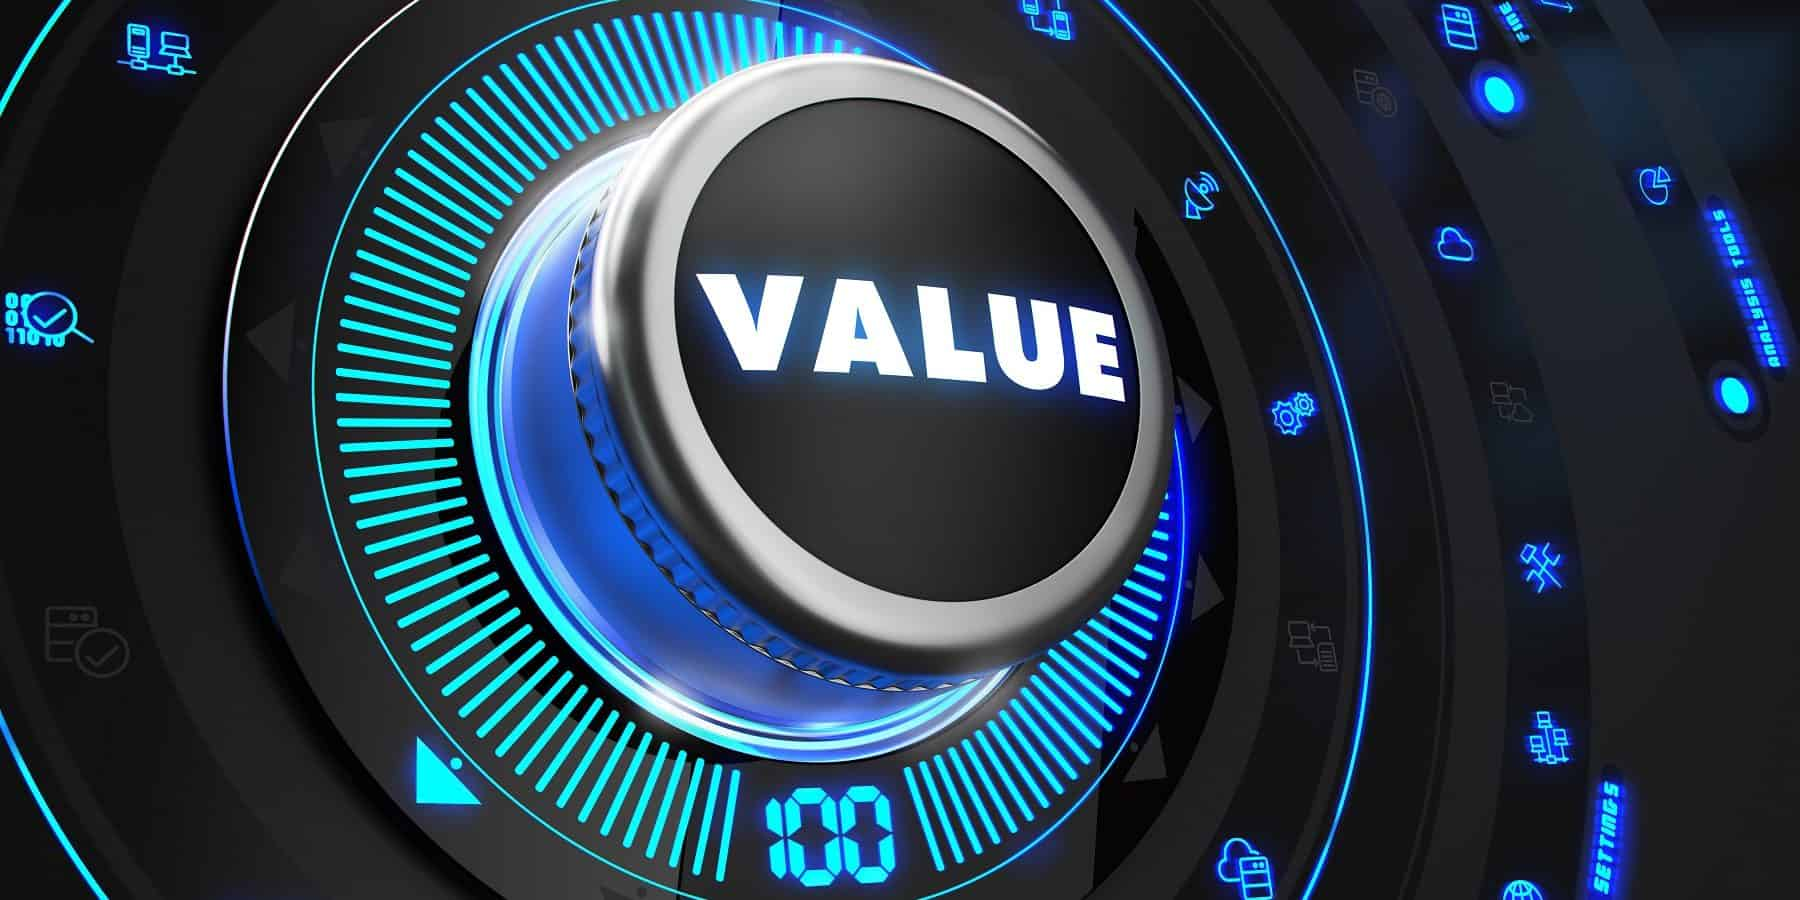 Value in business defined